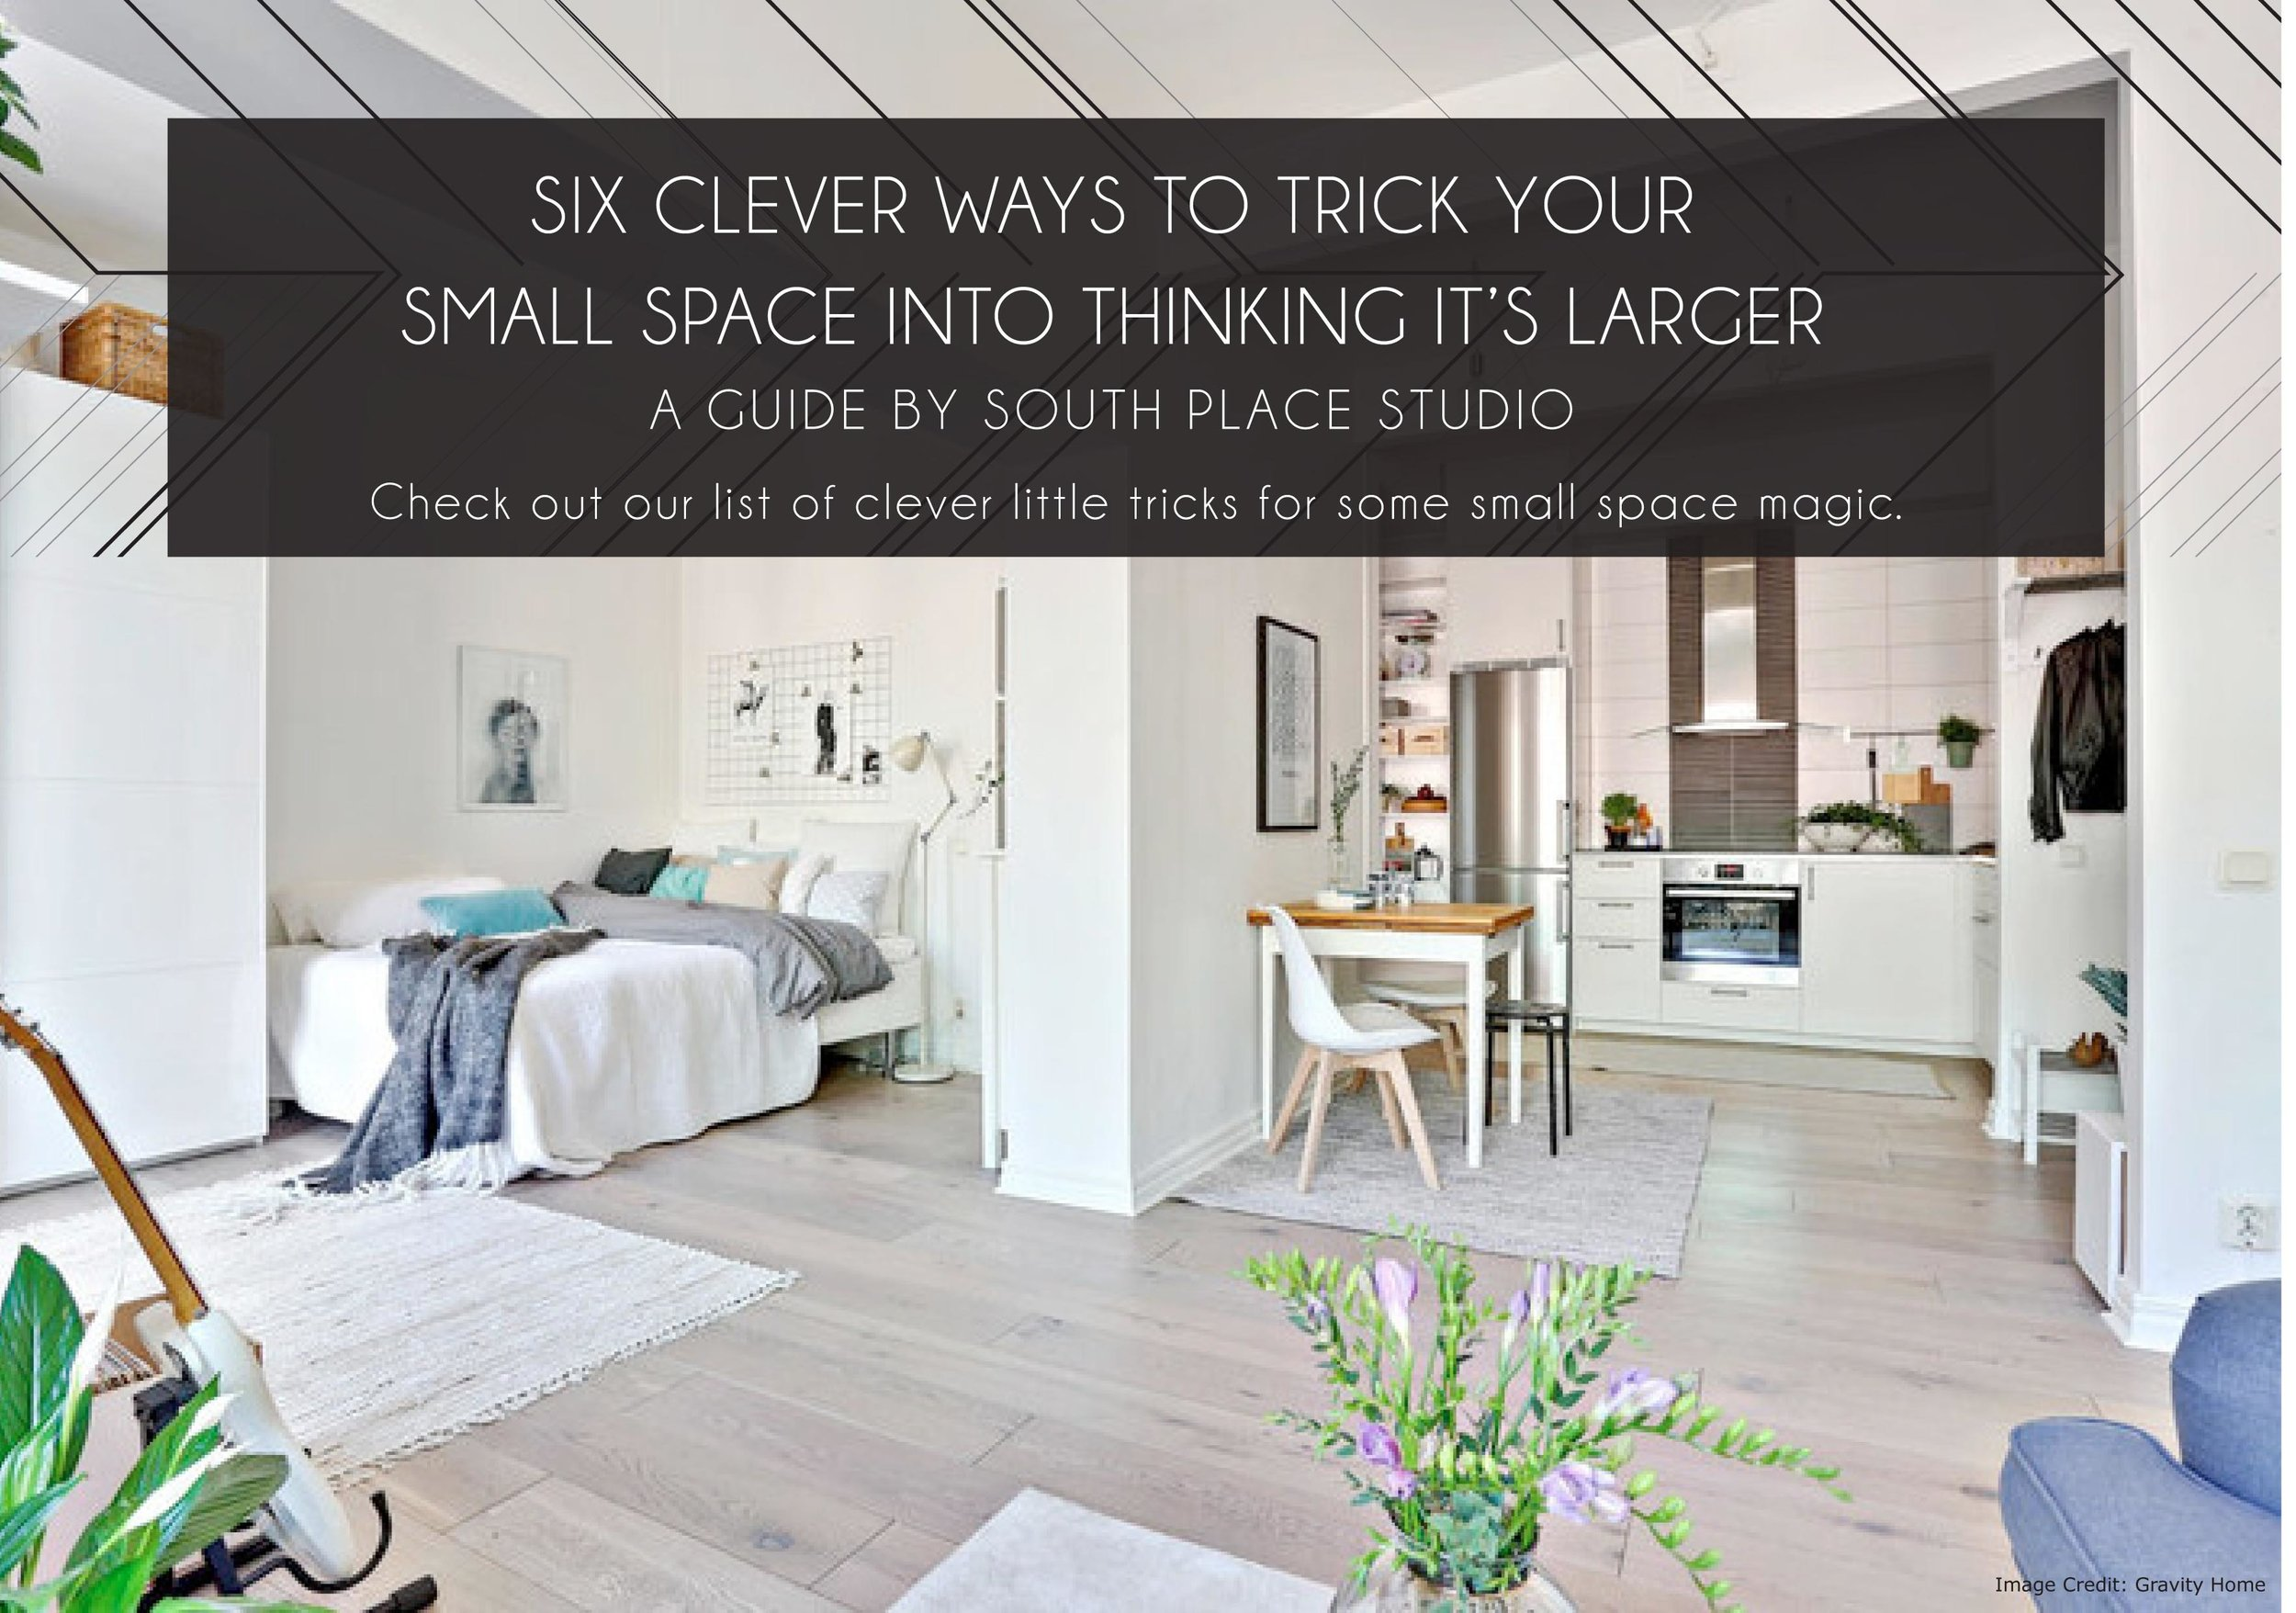 Six clever ways trick your small space into thinking it's larger